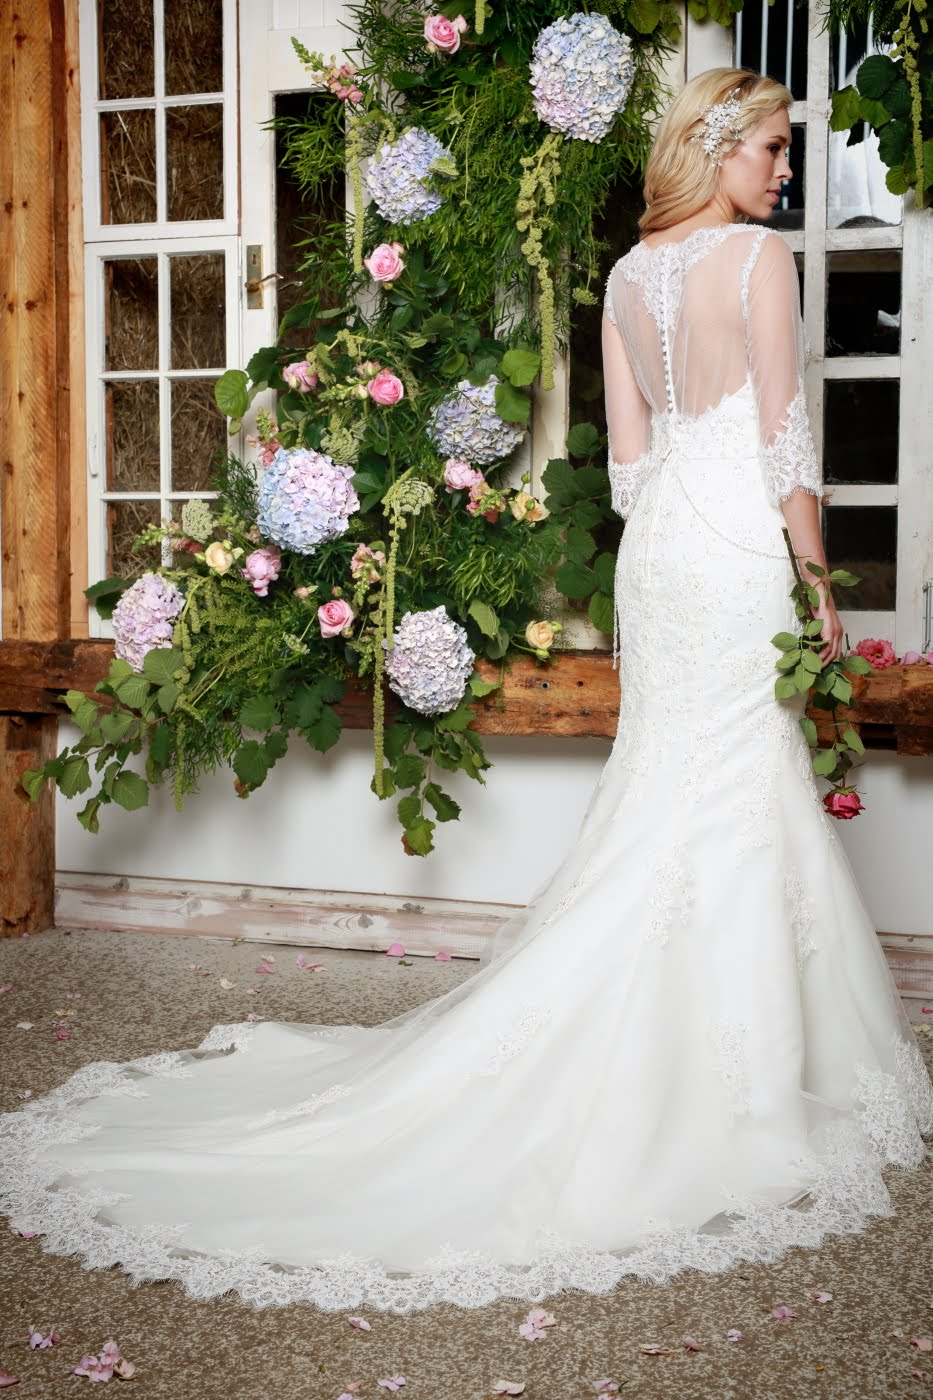 Tips for choosing a wedding dress